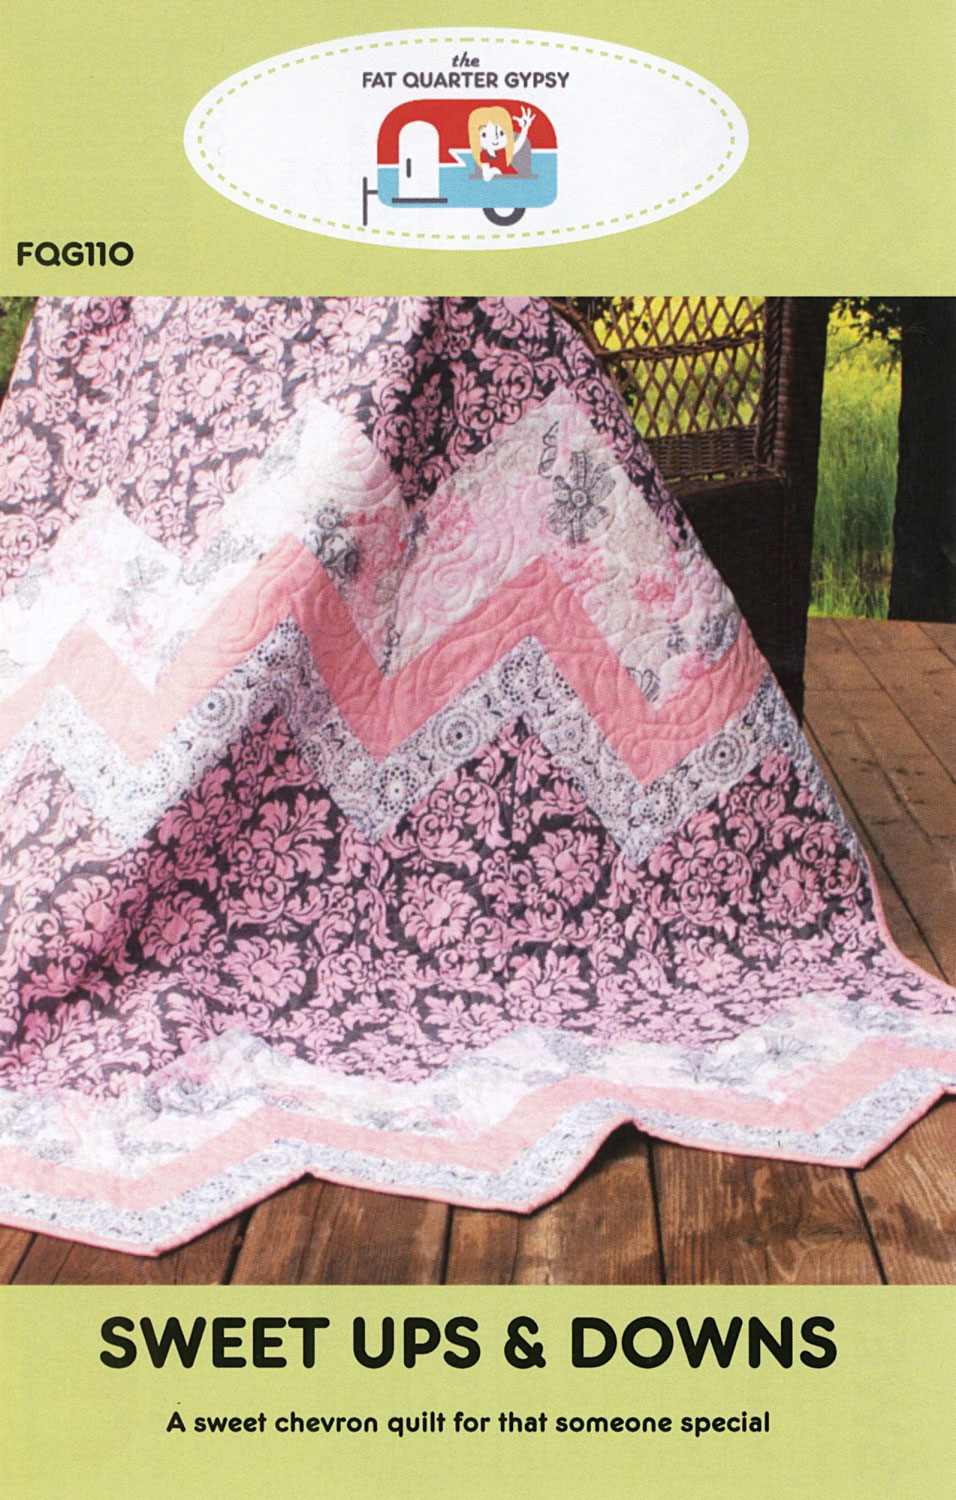 Sweet Ups and Downs quilt sewing pattern by the Fat Quarter Gypsy front cover